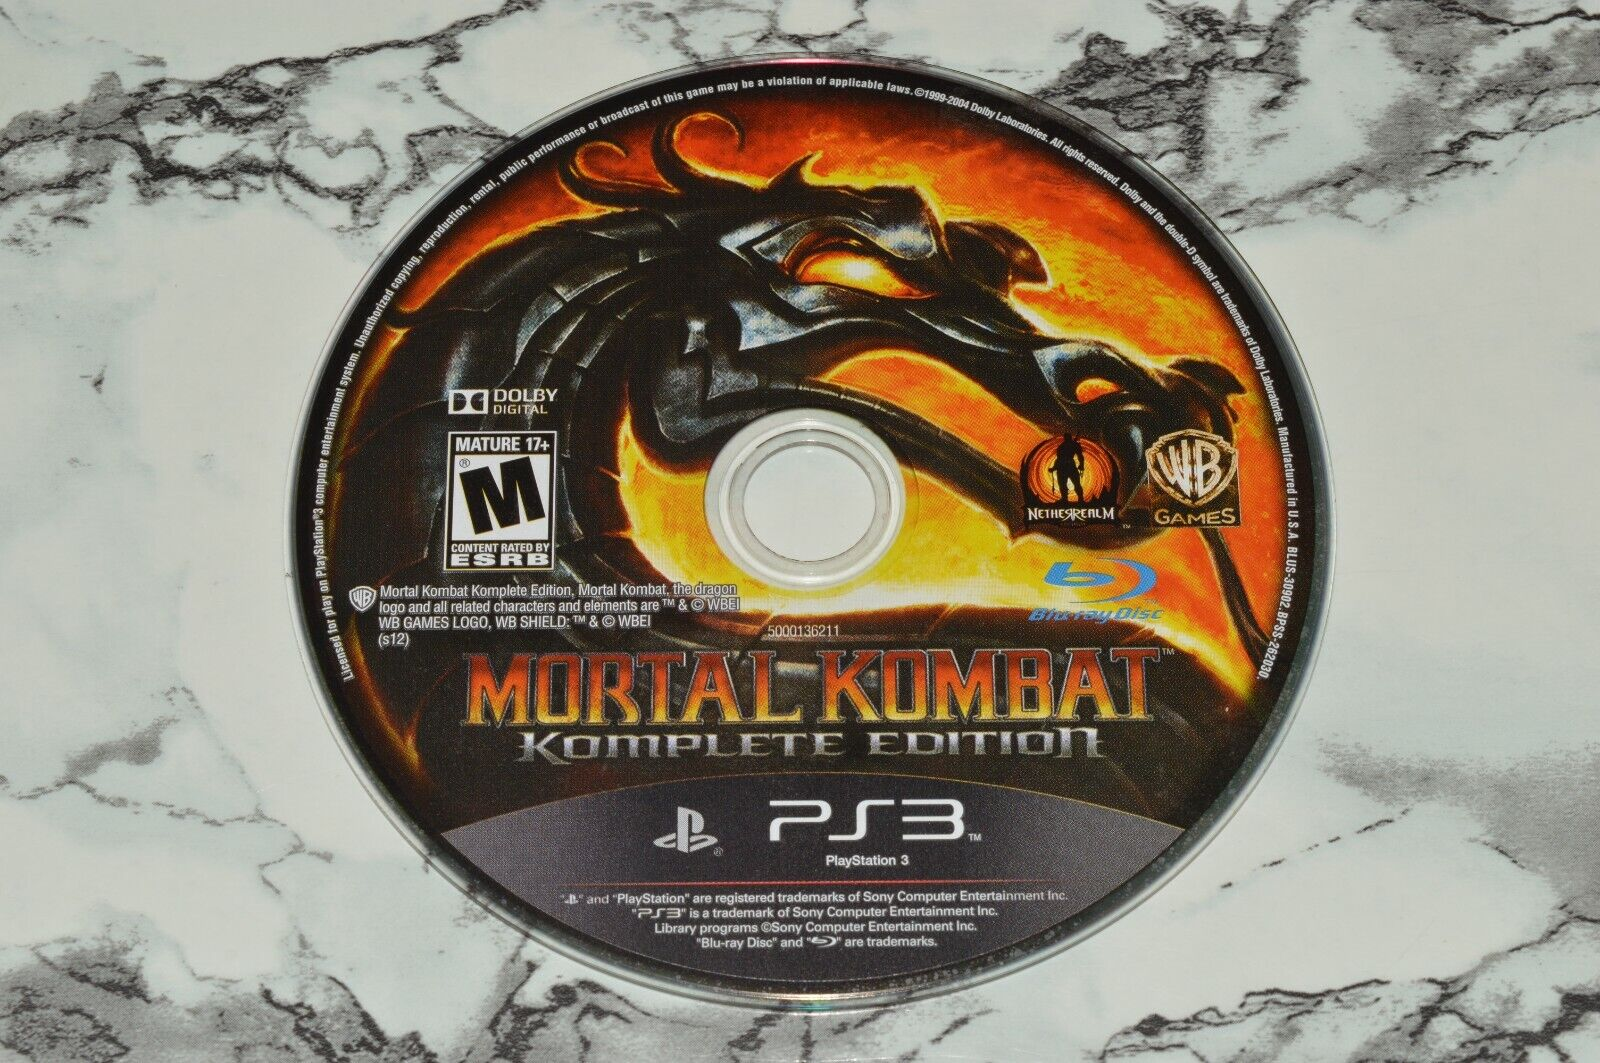 Mortal Kombat - Komplete Edition Sony PlayStation 3 PS3 -- GAME DISC ONLY - $12.68